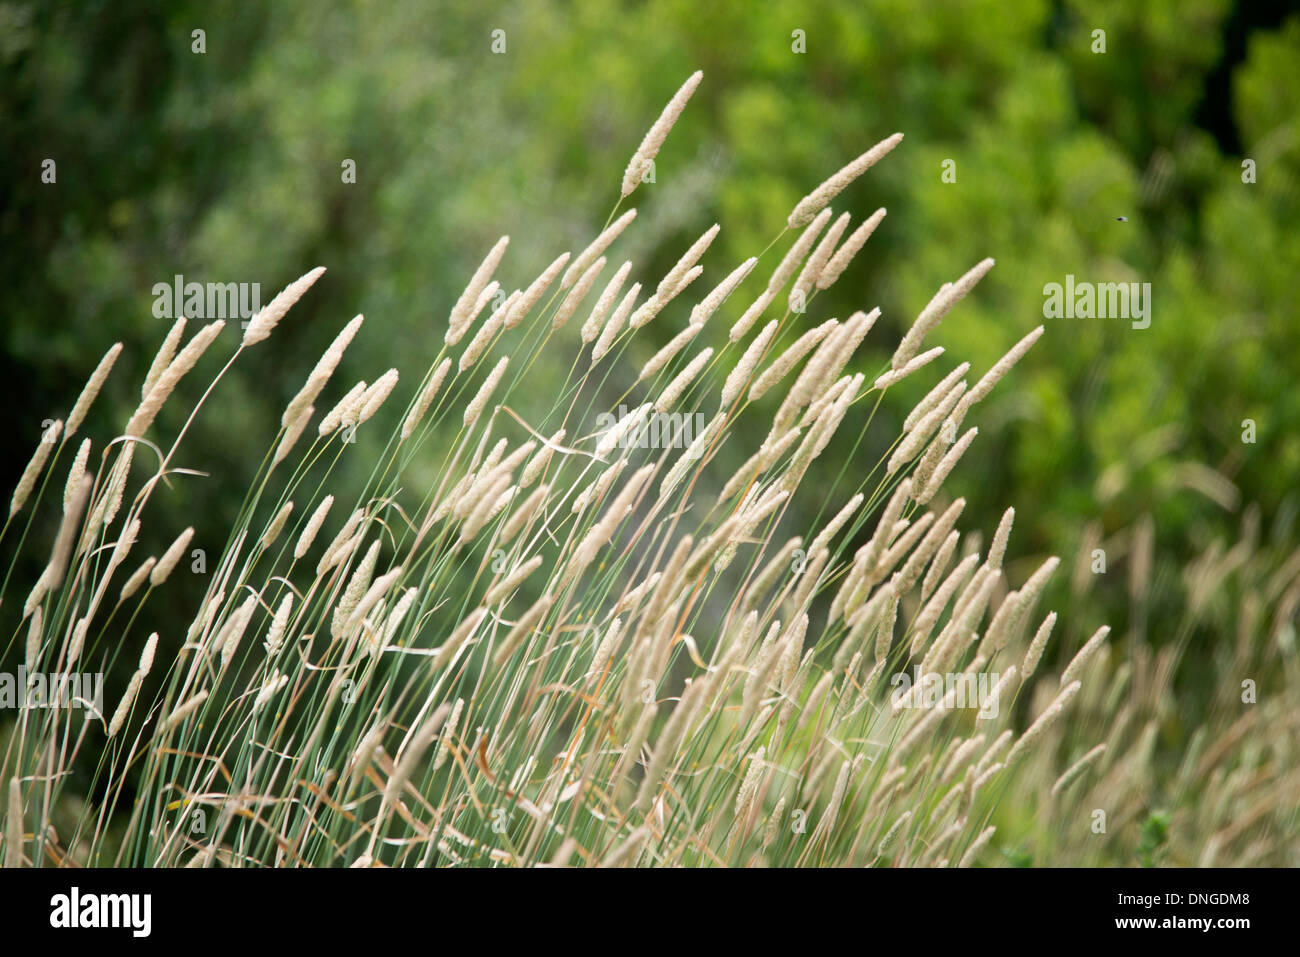 long grass closeup with tree background wheat grass close up - Stock Image